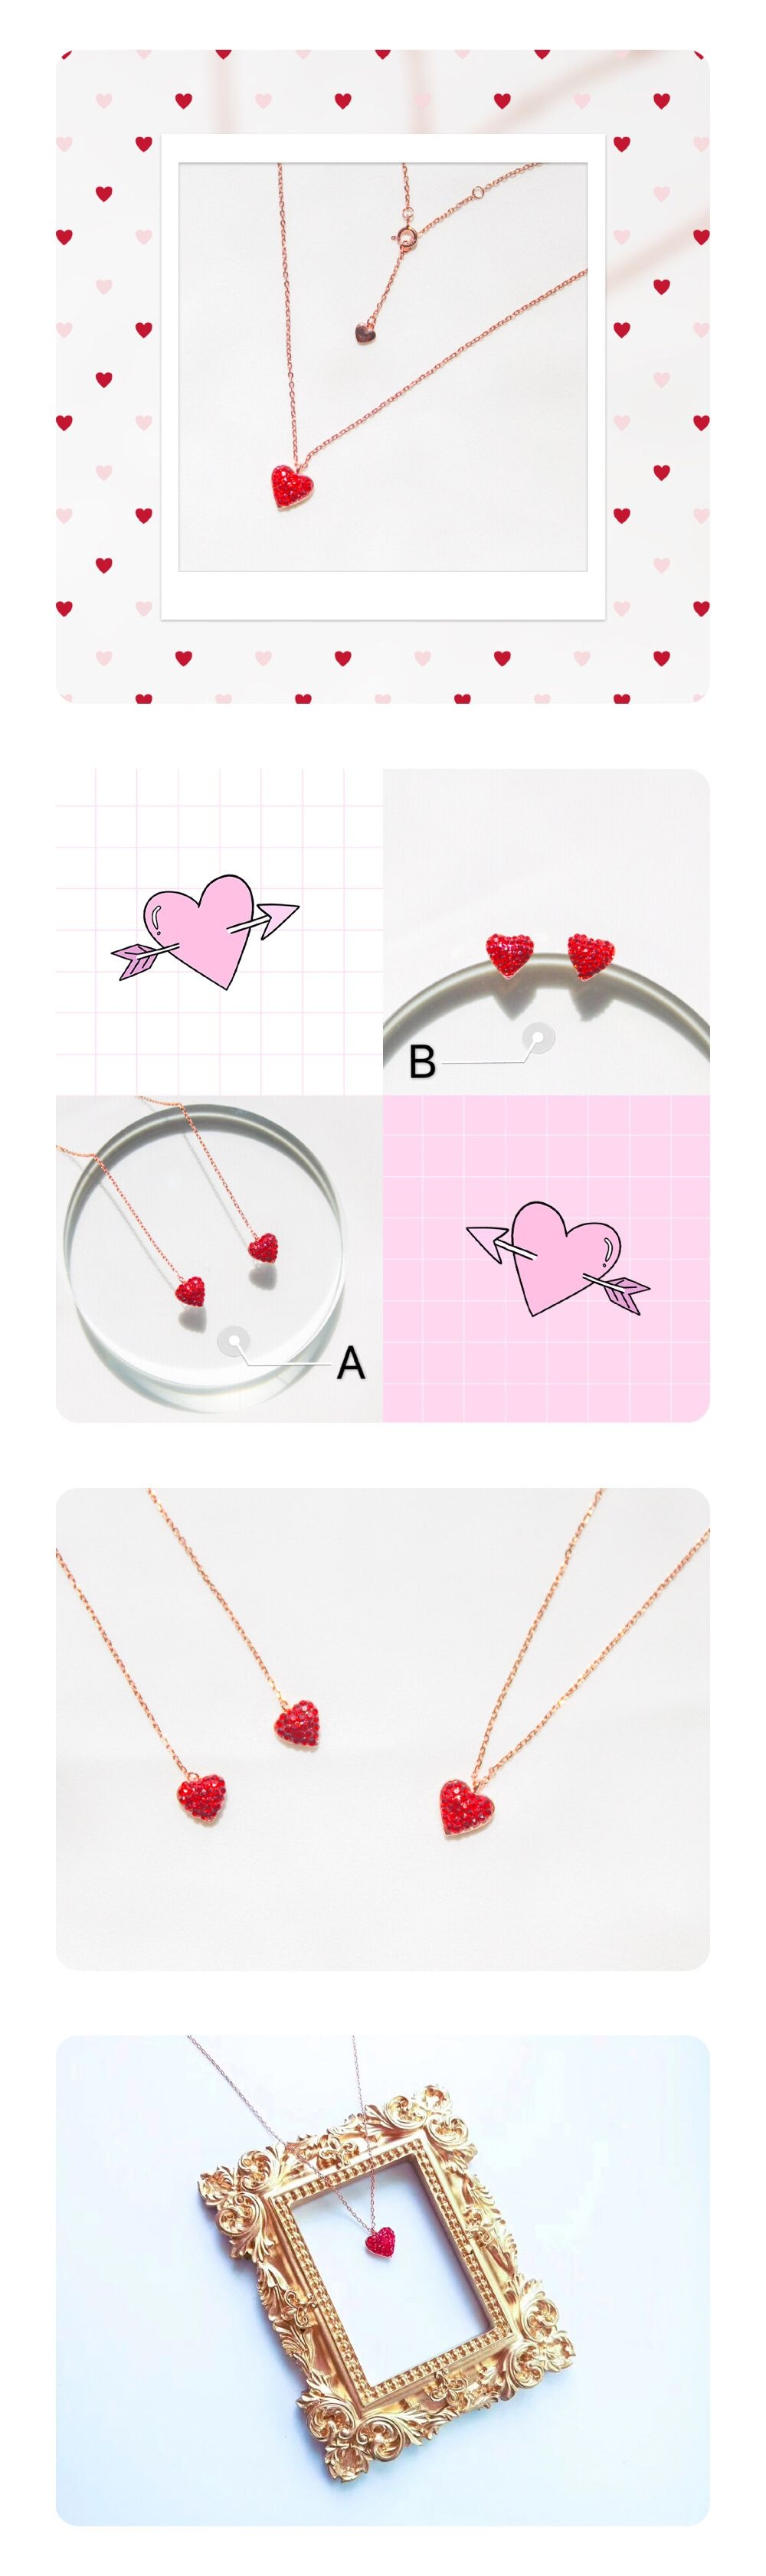 Love Heart Sliver Jewelry Earrings and Necklace